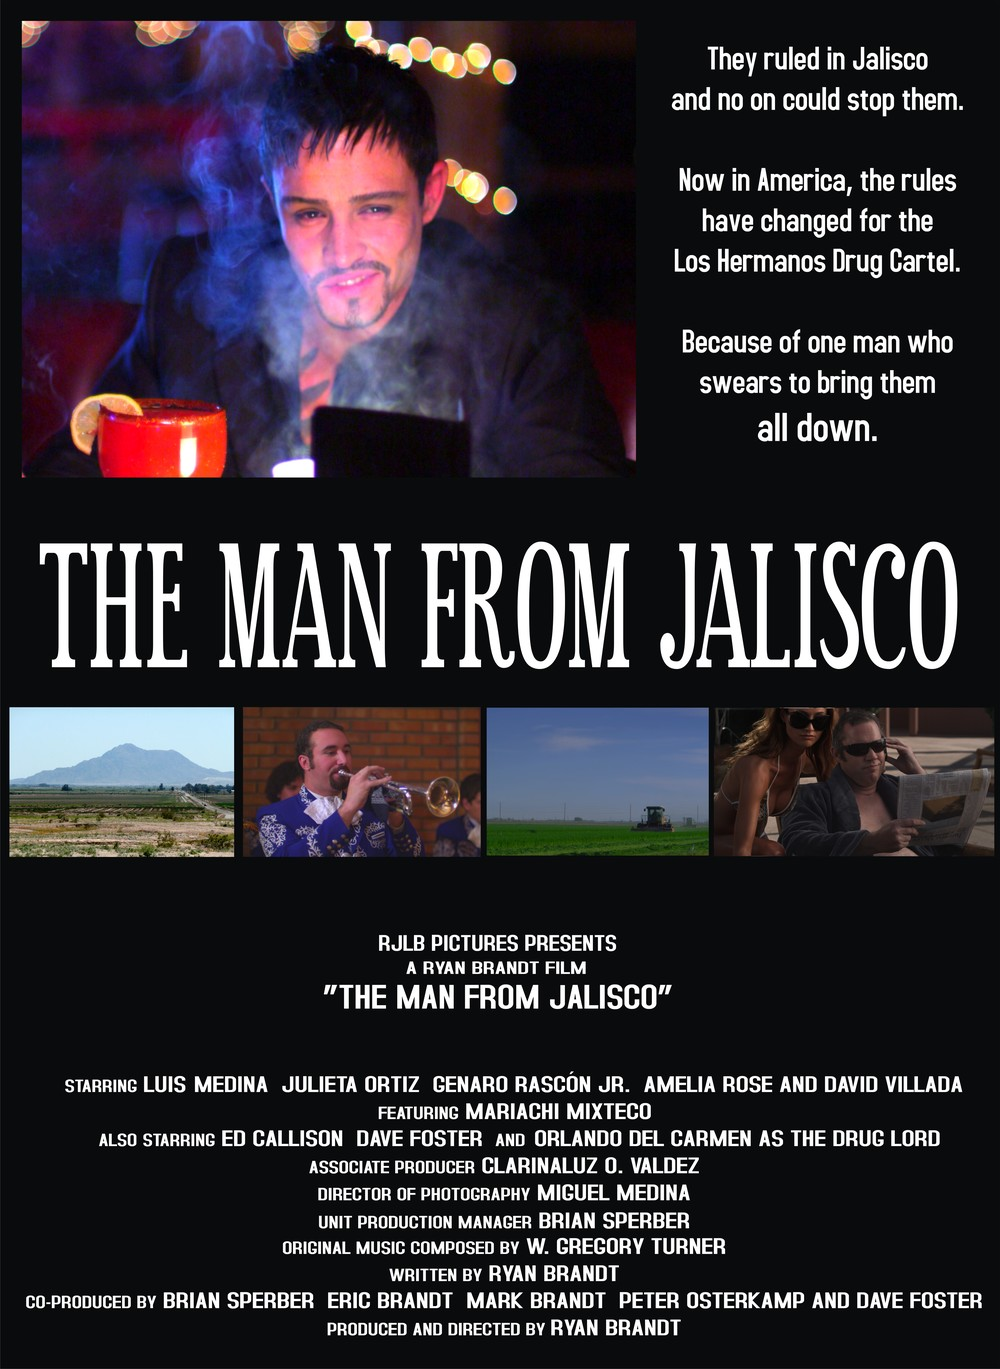 The_Man_From_Jalisco_cover2.jpg